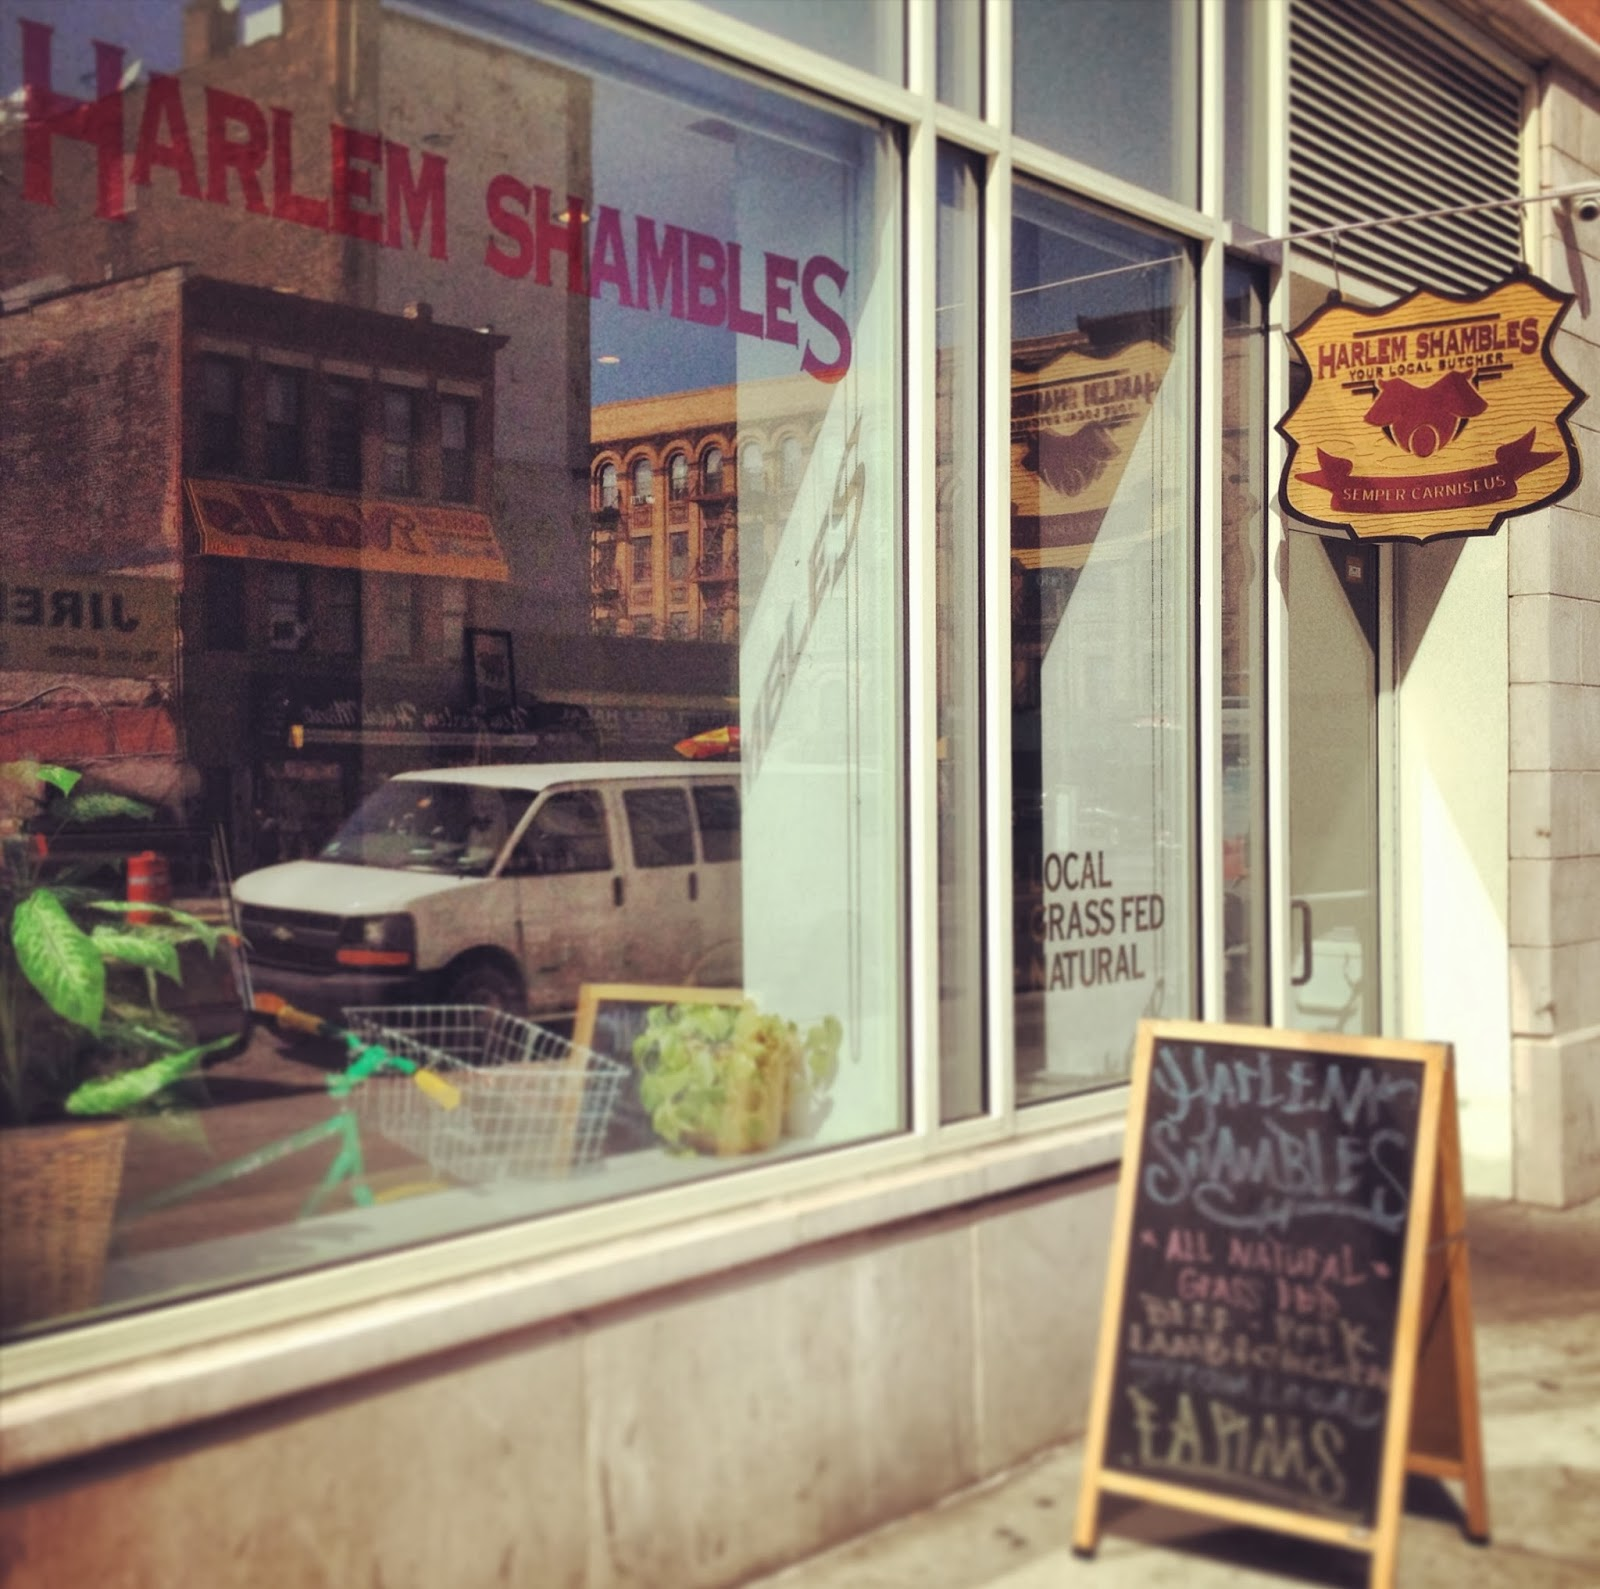 H a r l e m b e s p o k e bespoke a new view in harlem for Food bar harlem